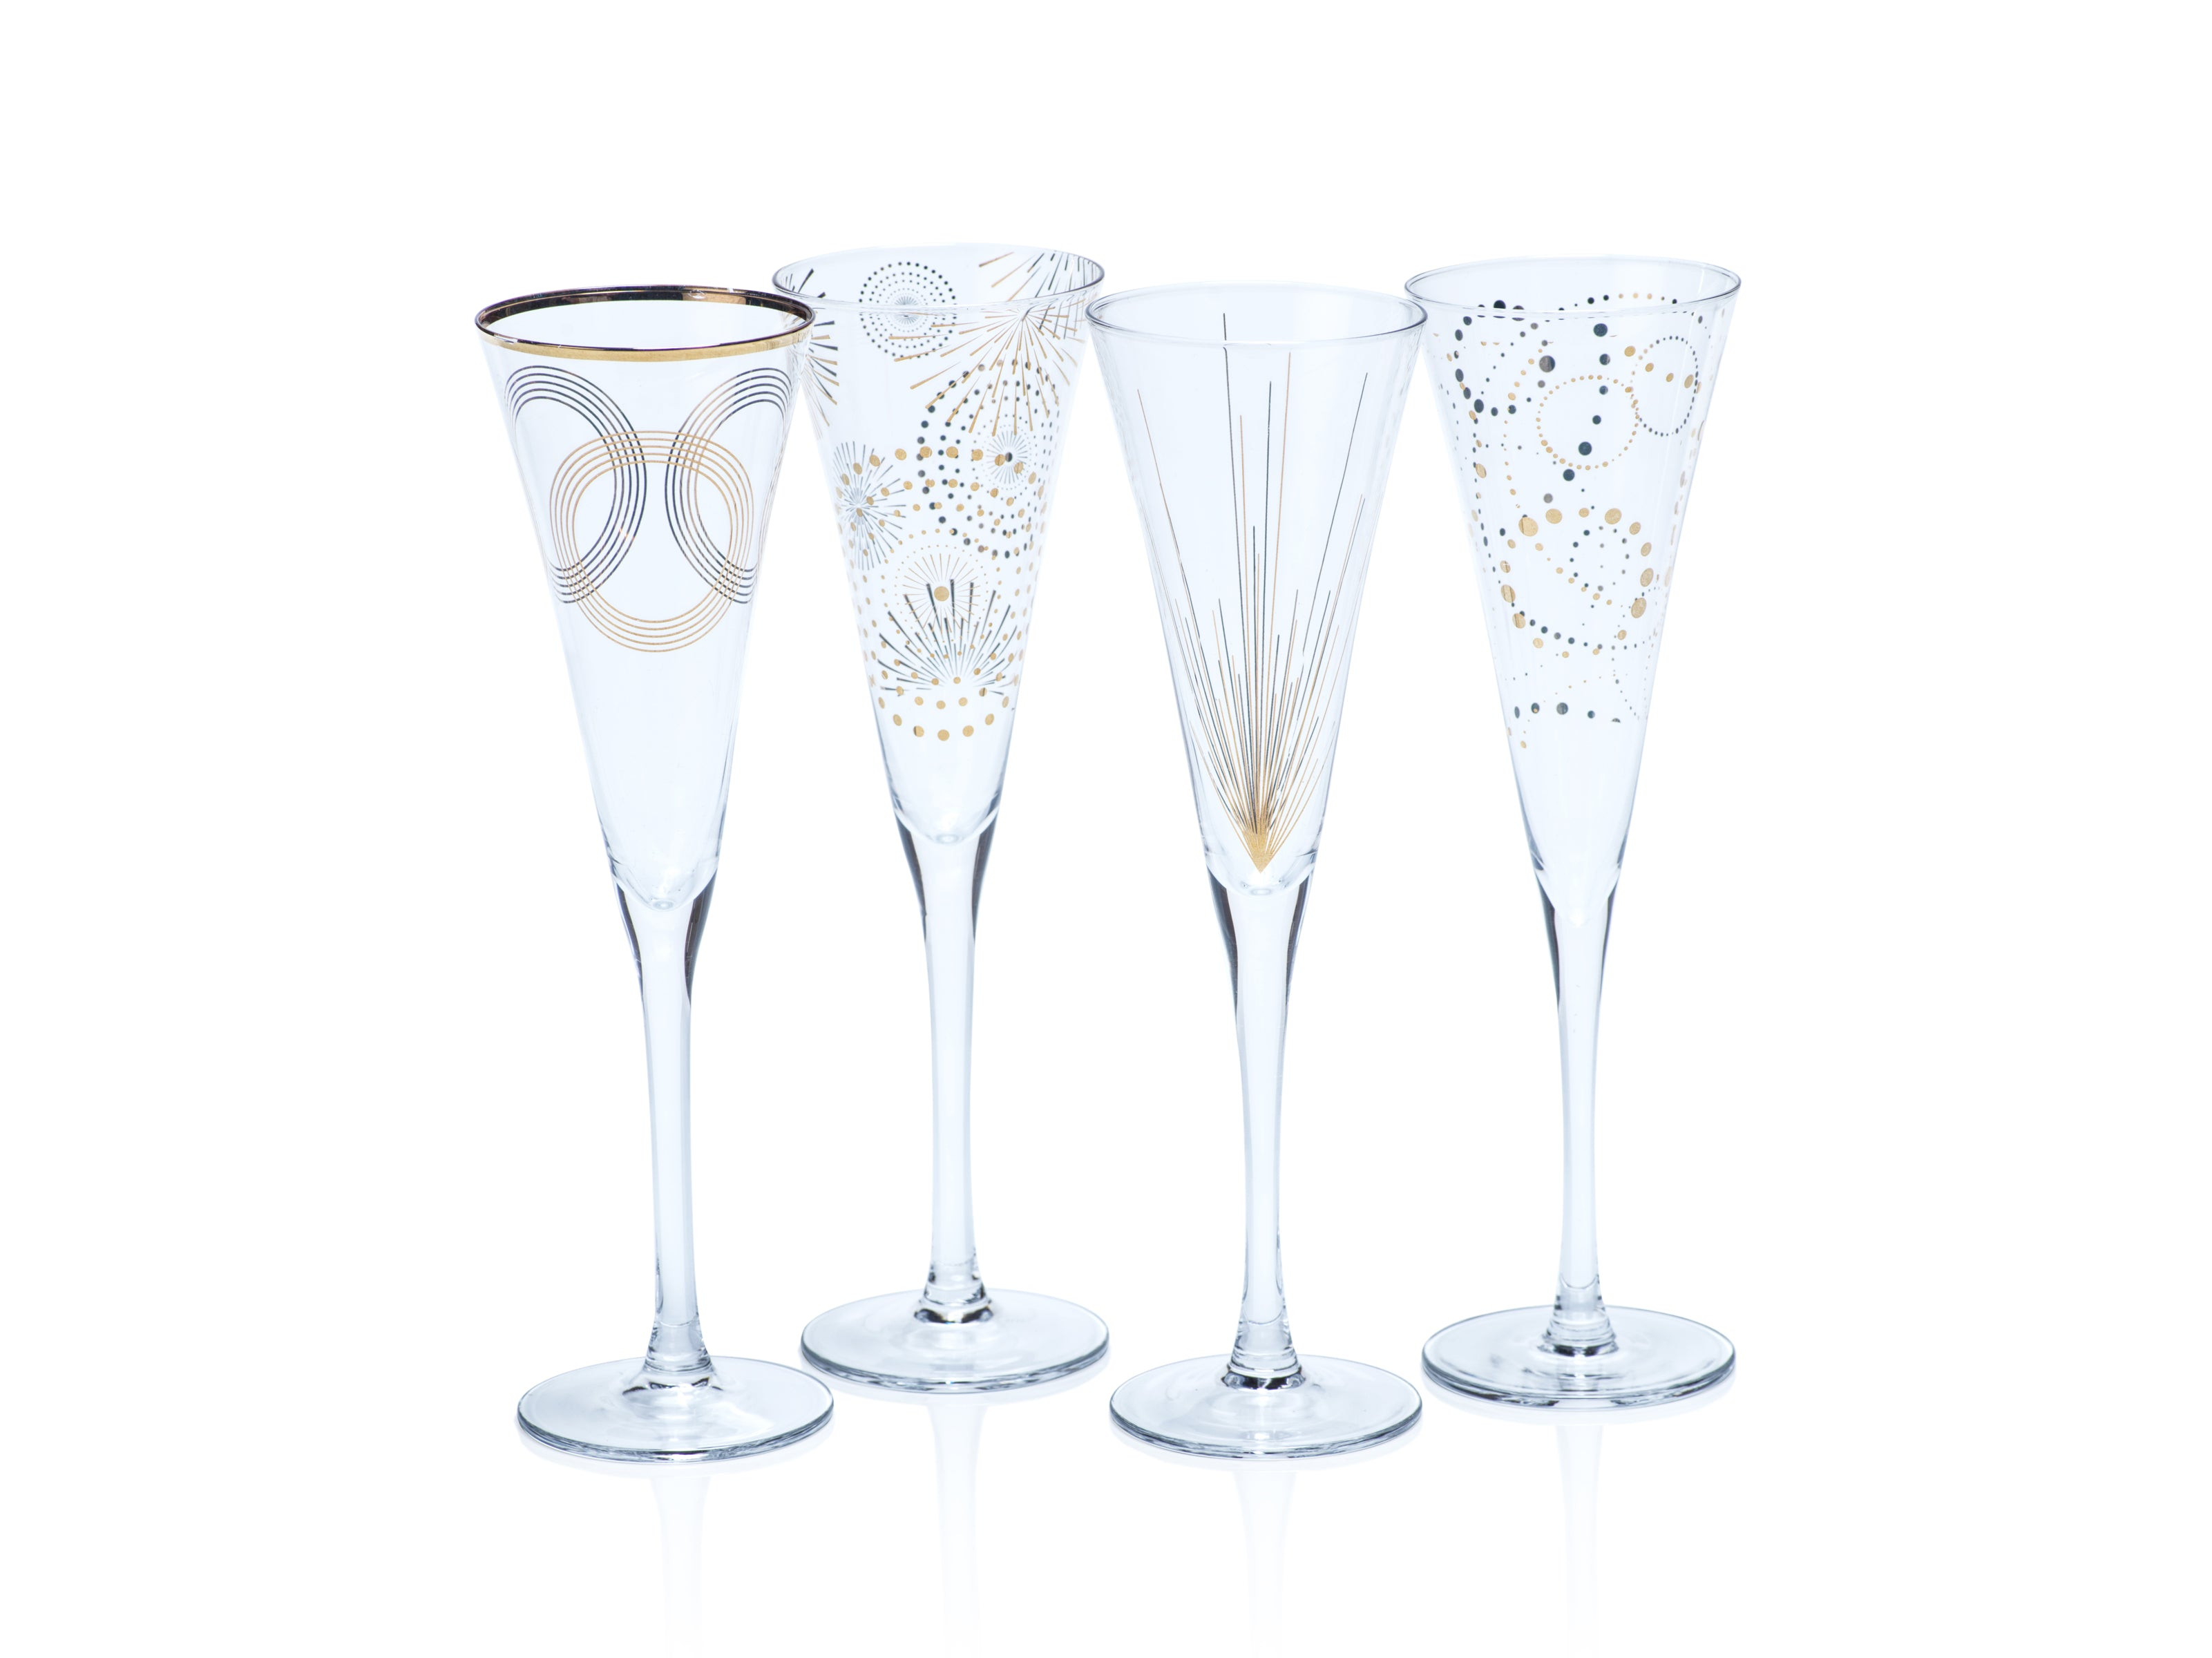 Celebration Champagne Flute Assortment - s/4 - CARLYLE AVENUE